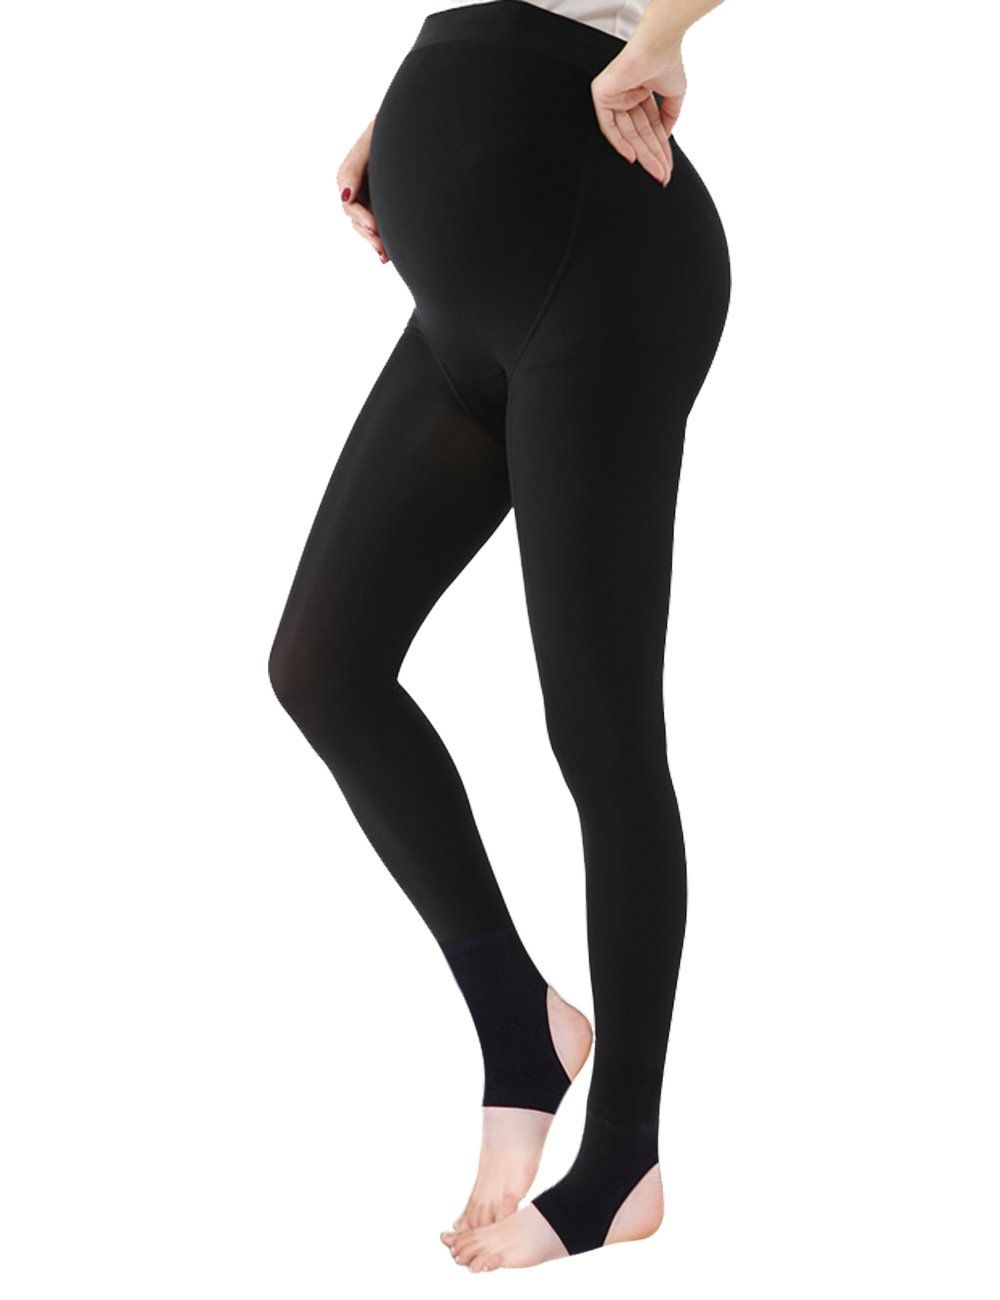 8b9525aa3cb37 Maternity Styles - smart maternity leggings : Womens Maternity Pregnancy  Tights Opaque Warm Thermal Brushed Fleece Lined Adjustable Support Footless  Legging ...